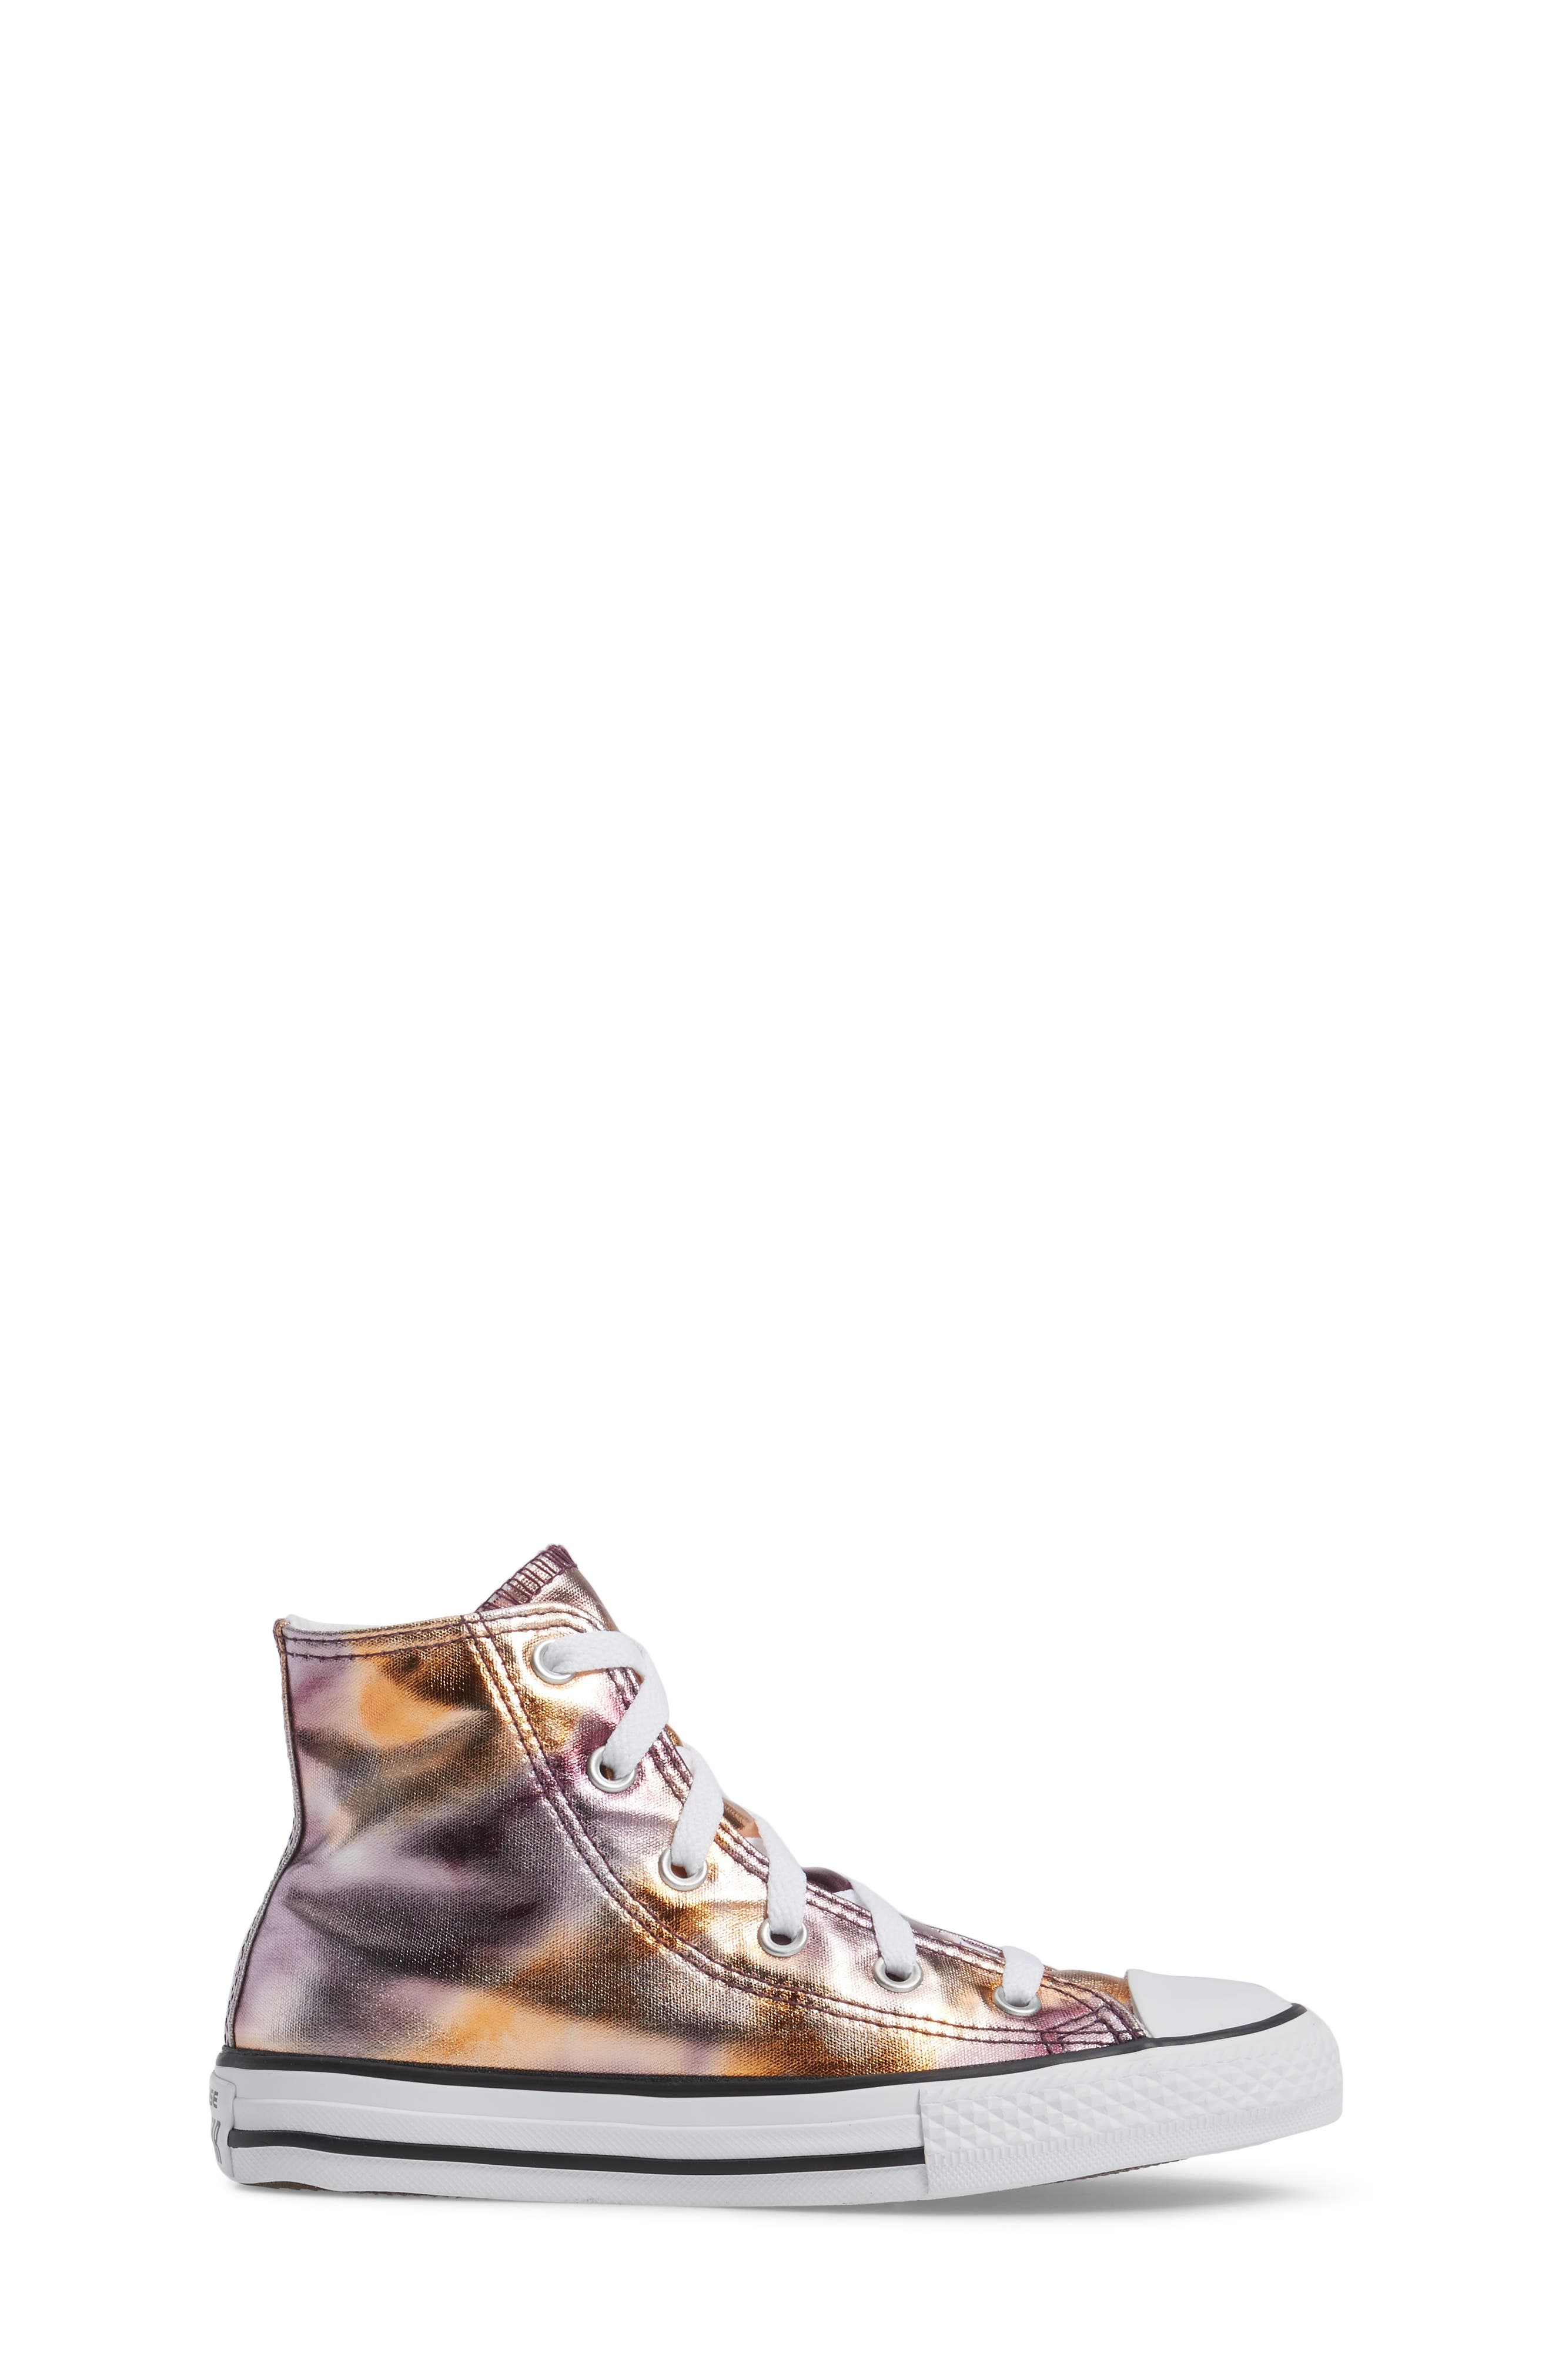 Chuck Taylor<sup>®</sup> All Star<sup>®</sup> Metallic High Top Sneaker,                             Alternate thumbnail 3, color,                             Dusk Pink Coated Canvas